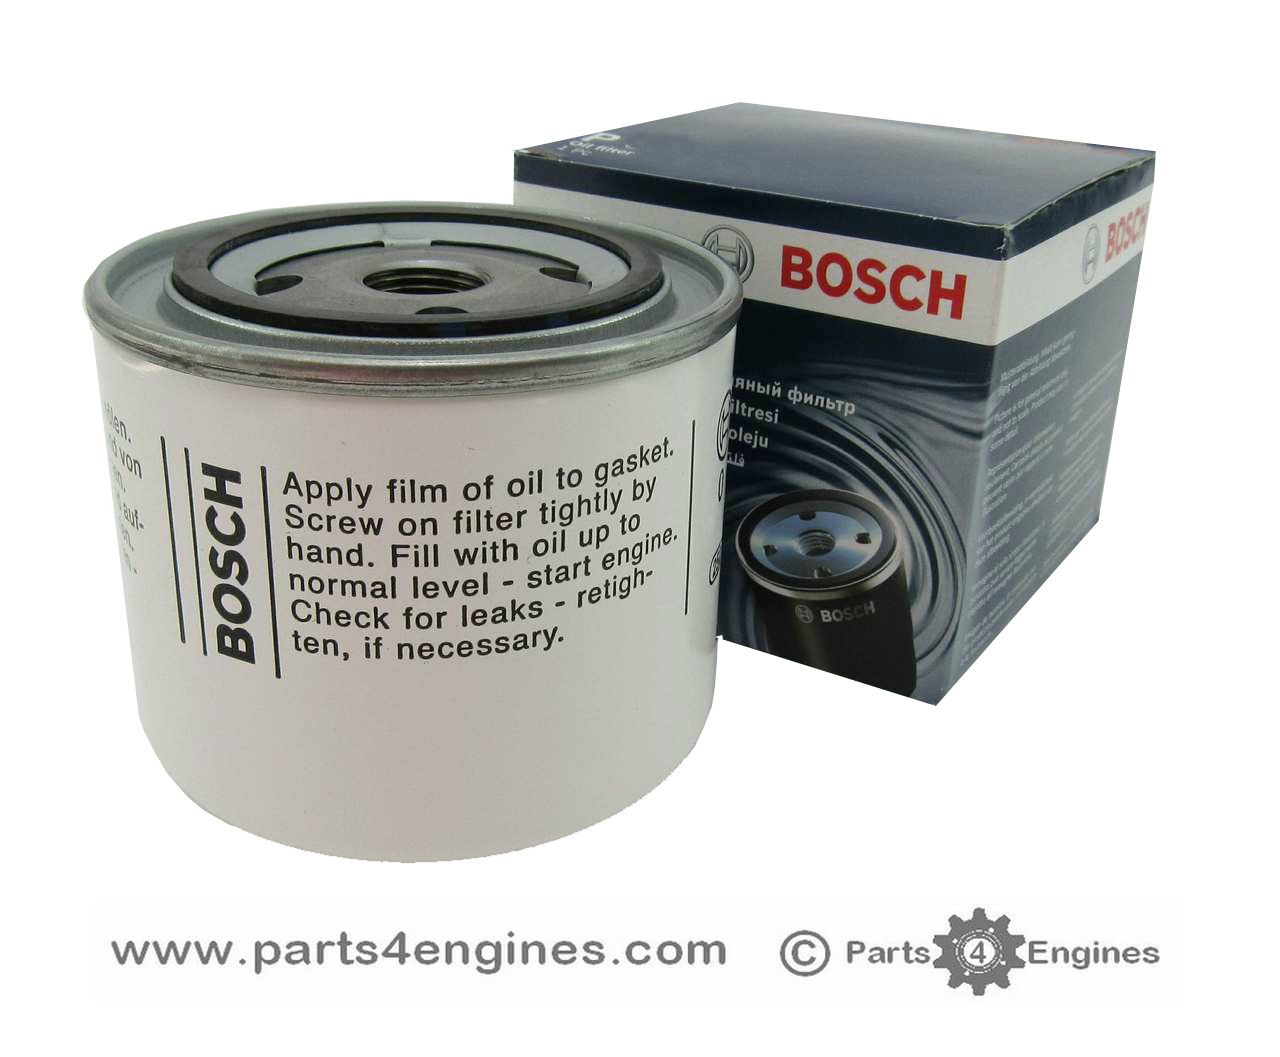 Volvo Penta MD22 Late oil filter from Parts4Engines.com